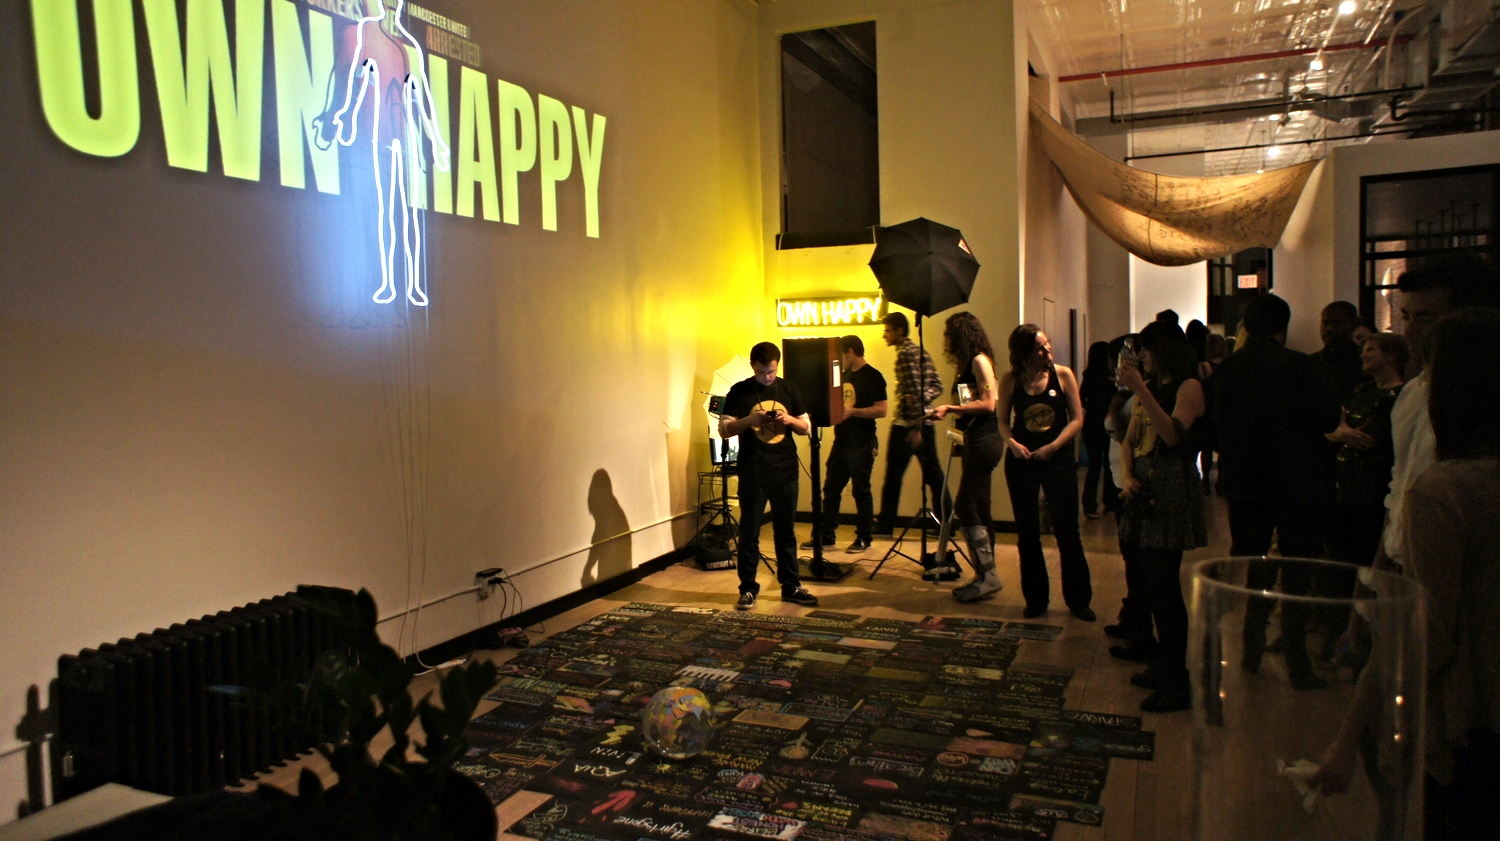 Want a fun and engaging way to explore complex topics in community?  Multi-sensory, interactive art experiences curated for workplaces, networking events and spaces that bring to life human emotions, turning viewers into artists and strangers into friends, designing environments of creation and connection.